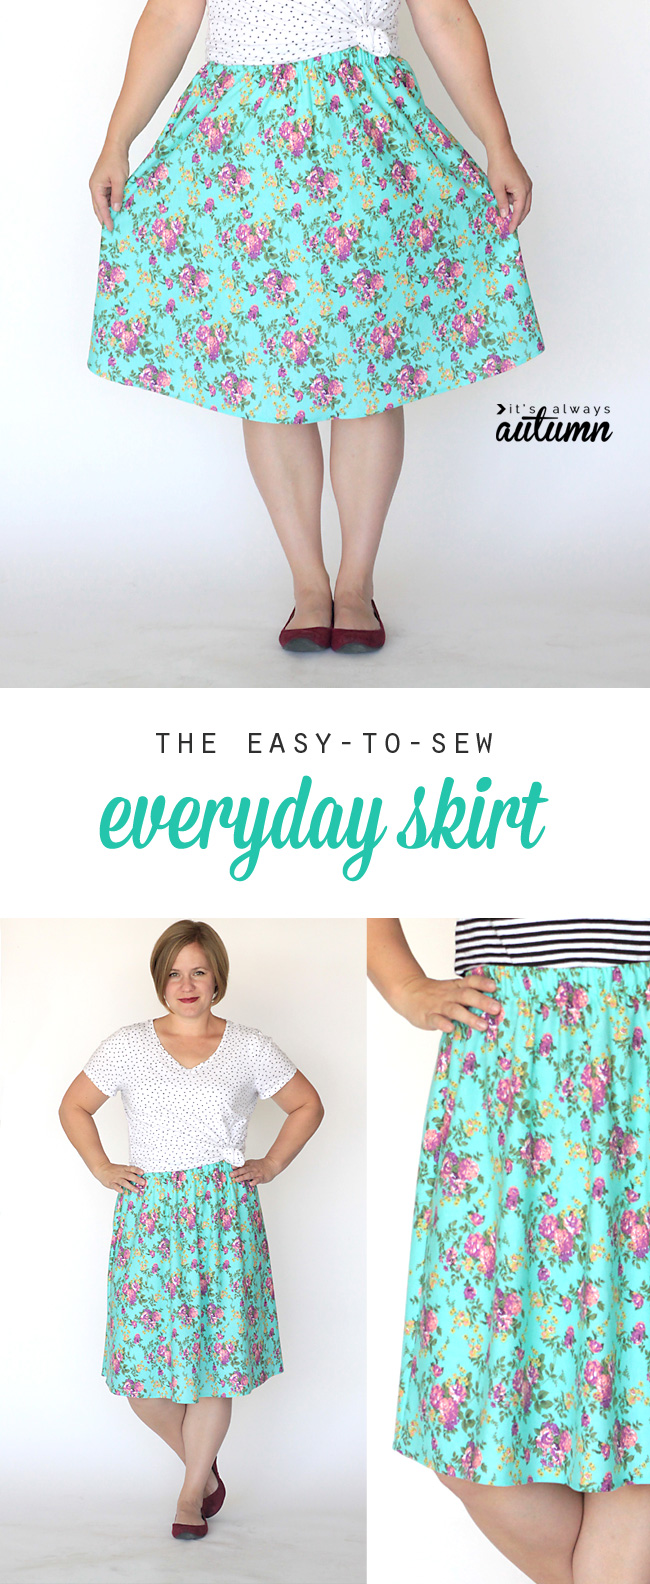 the everyday skirt simple sewing tutorial it s always autumn